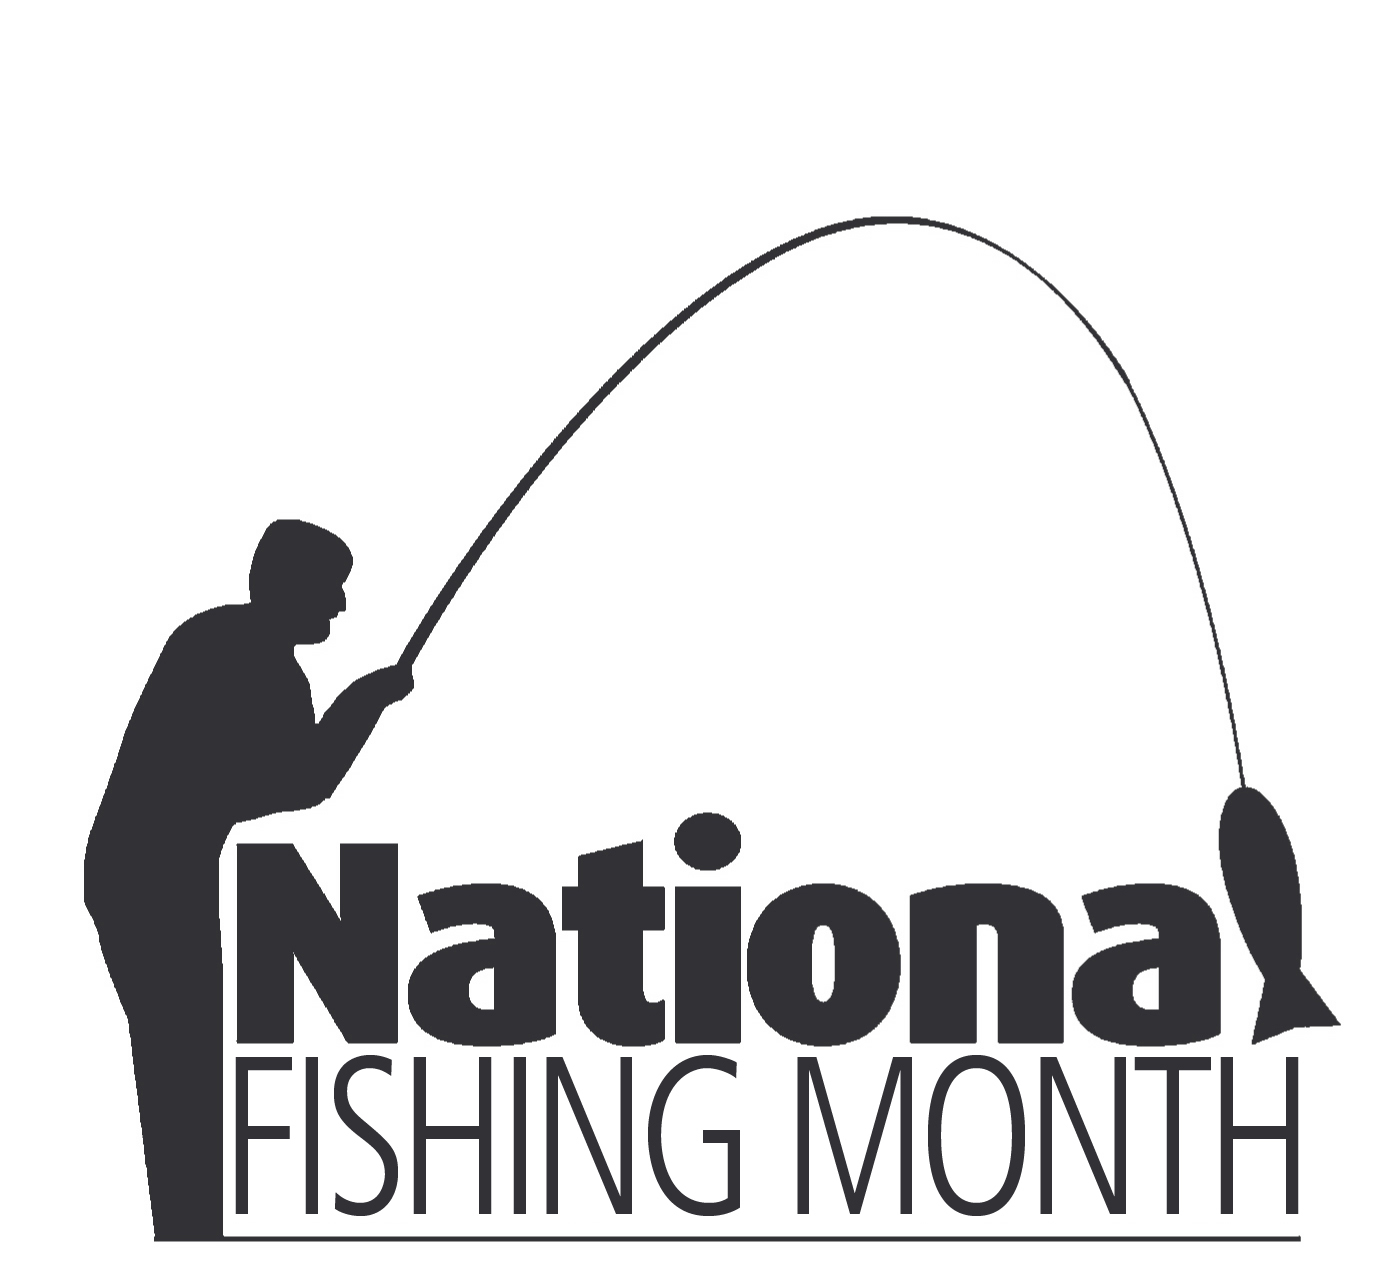 Nat Fishing month logo.jpg